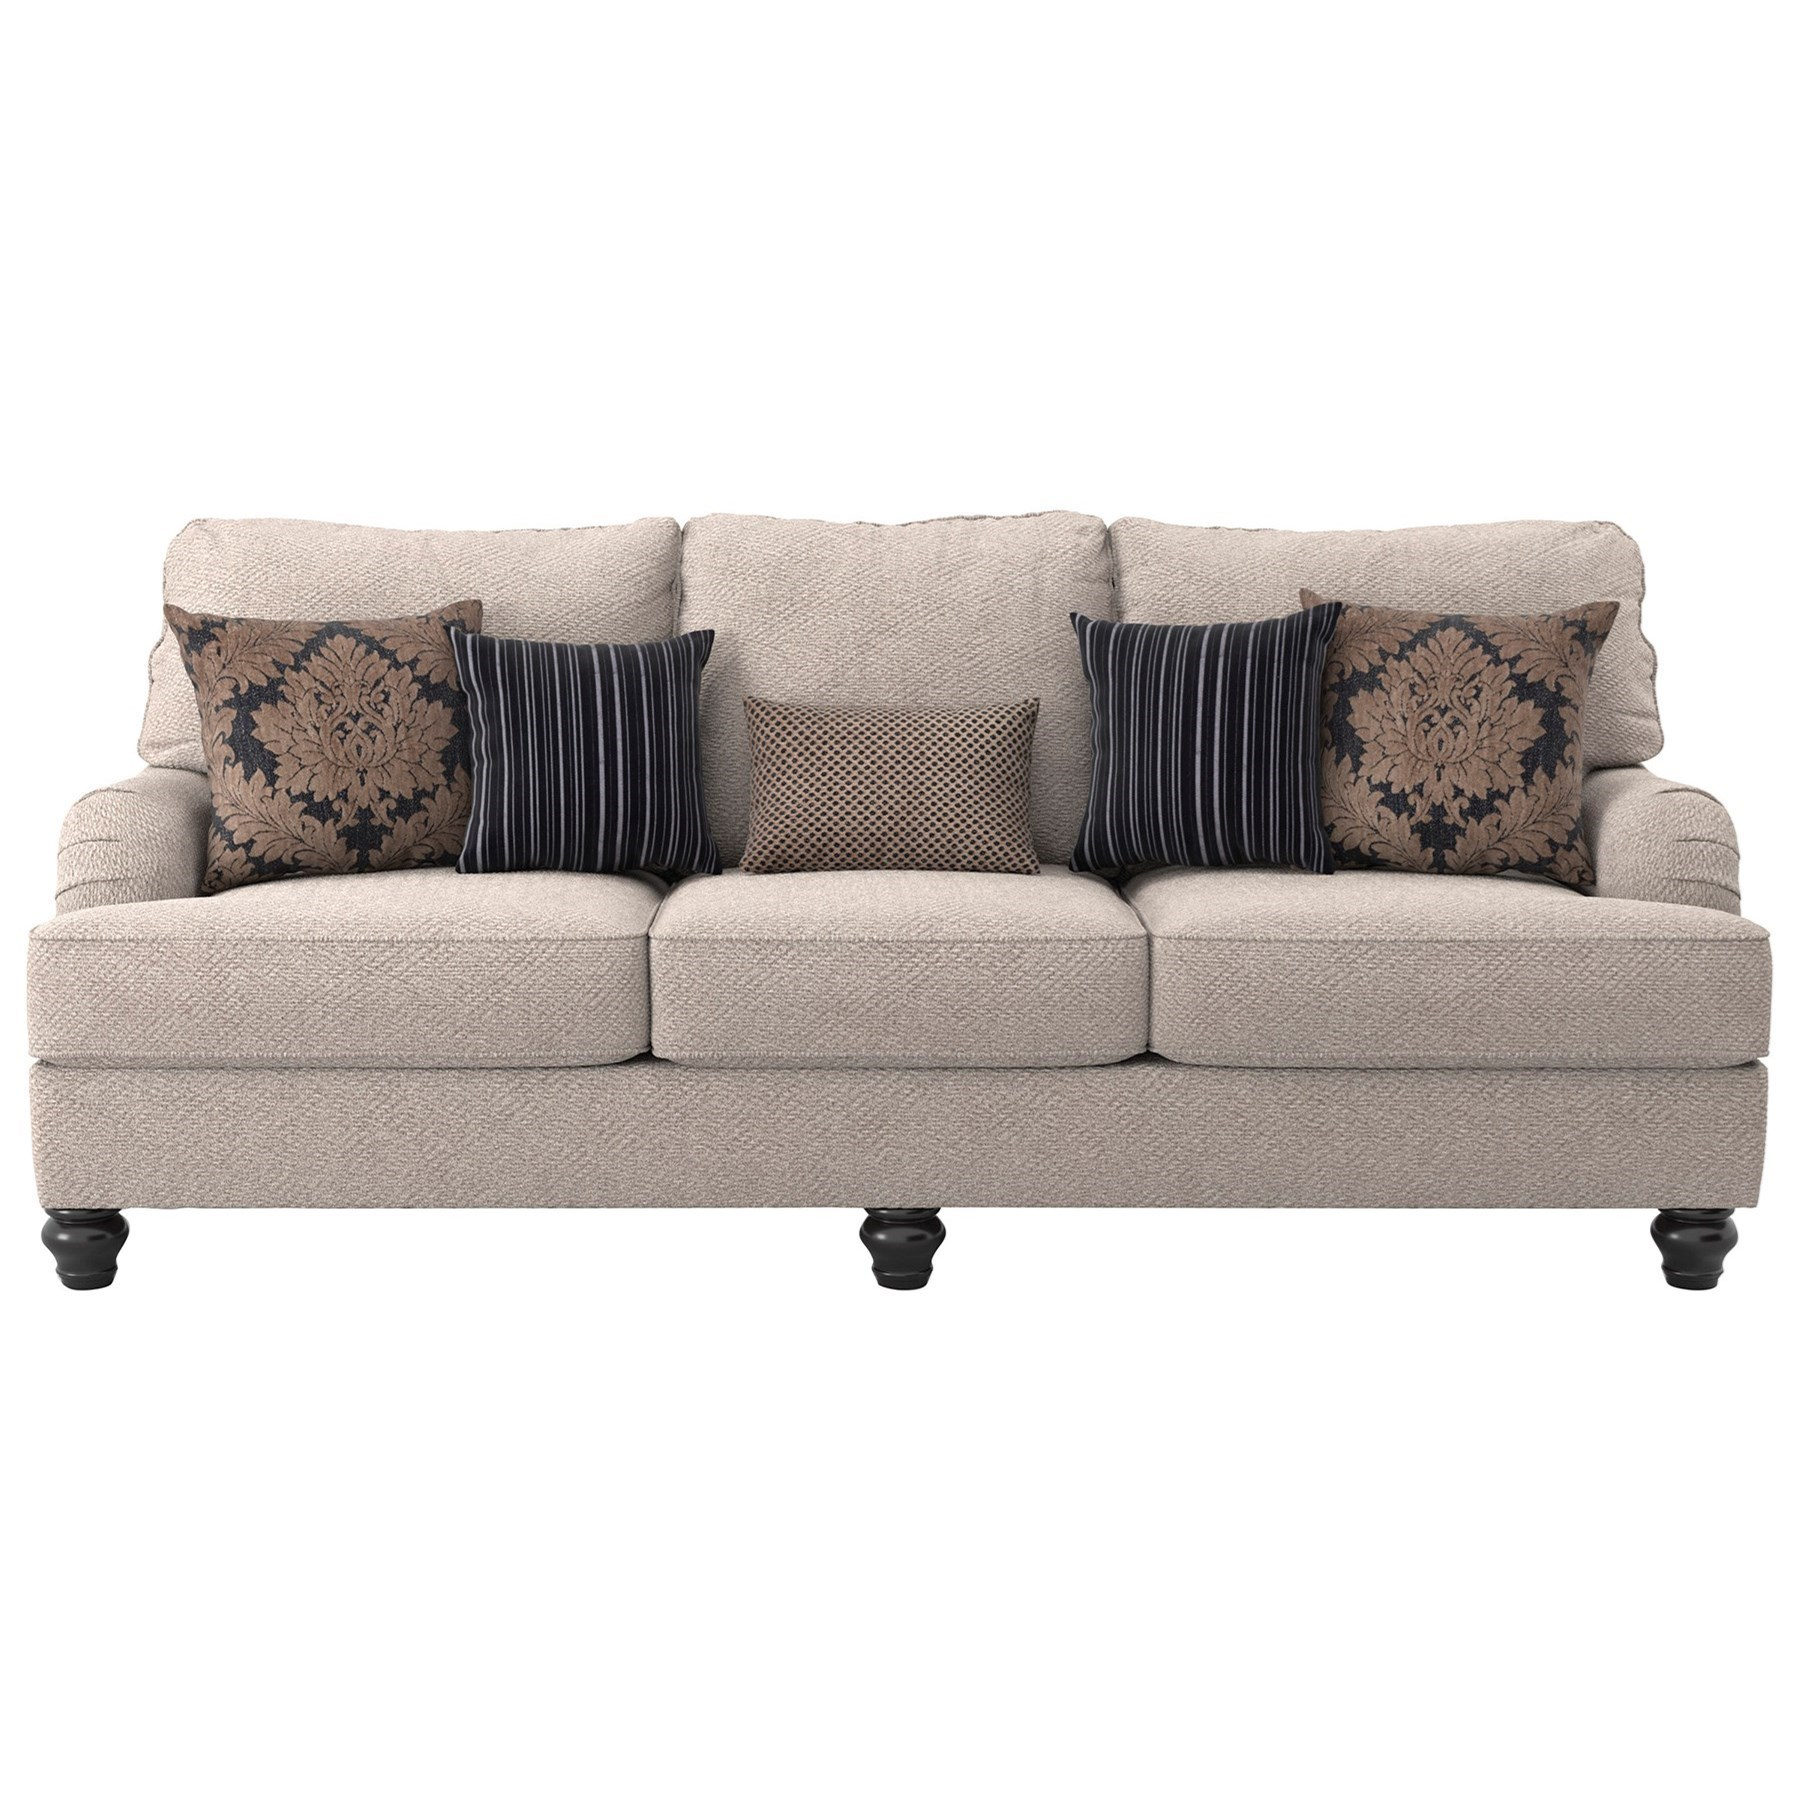 ashley sectional sofa set thomasville westport furniture sofas leather sectionals